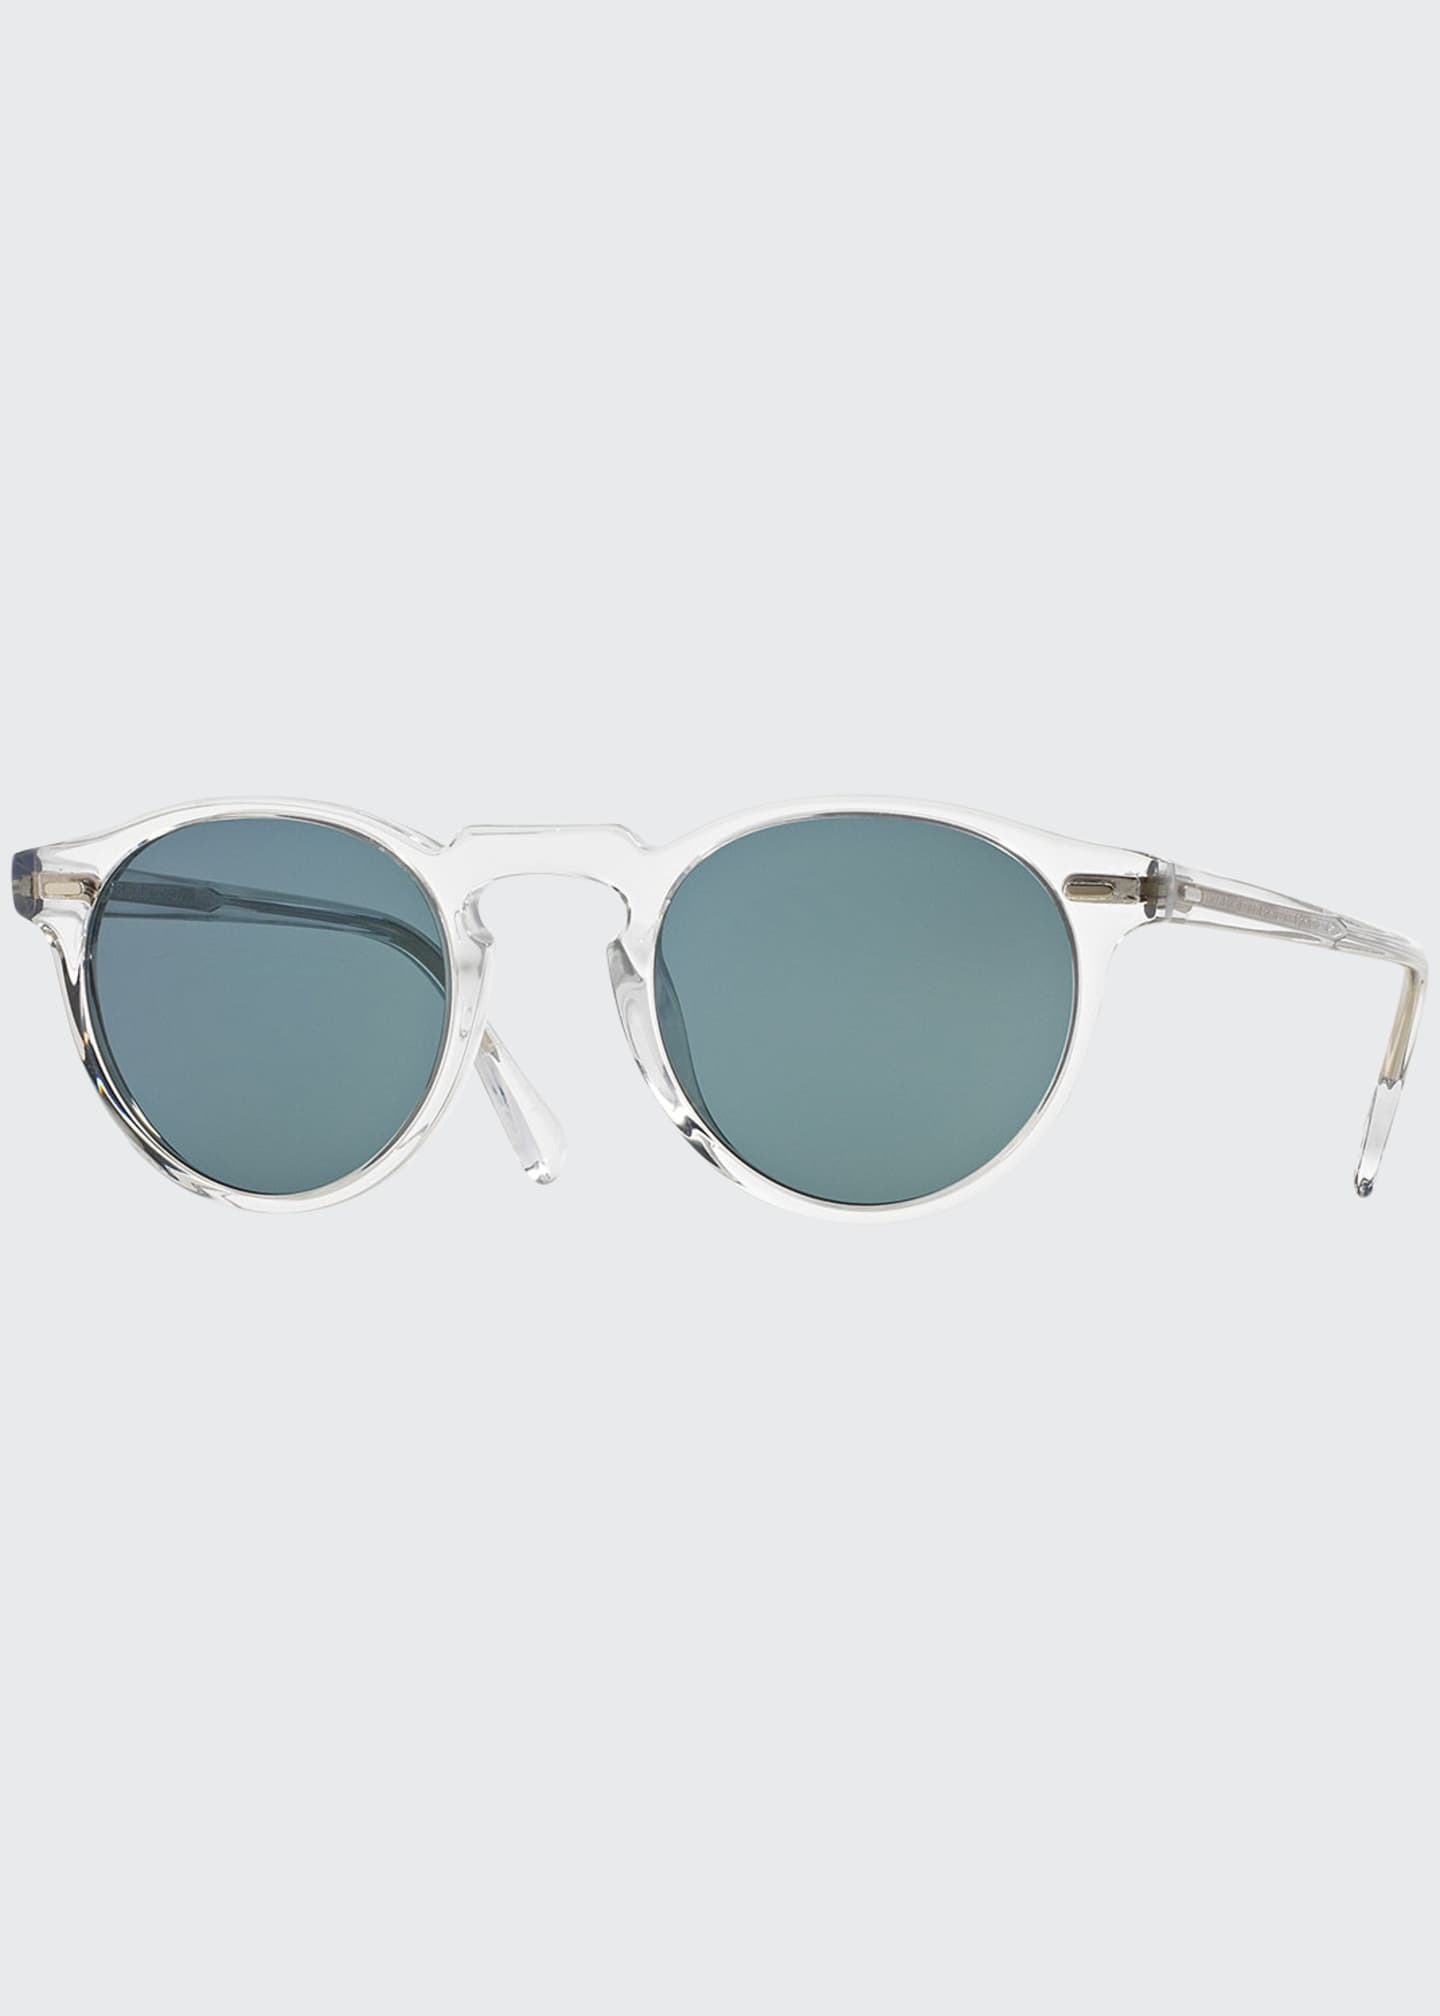 Image 1 of 2: Gregory Peck Round Acetate Sunglasses